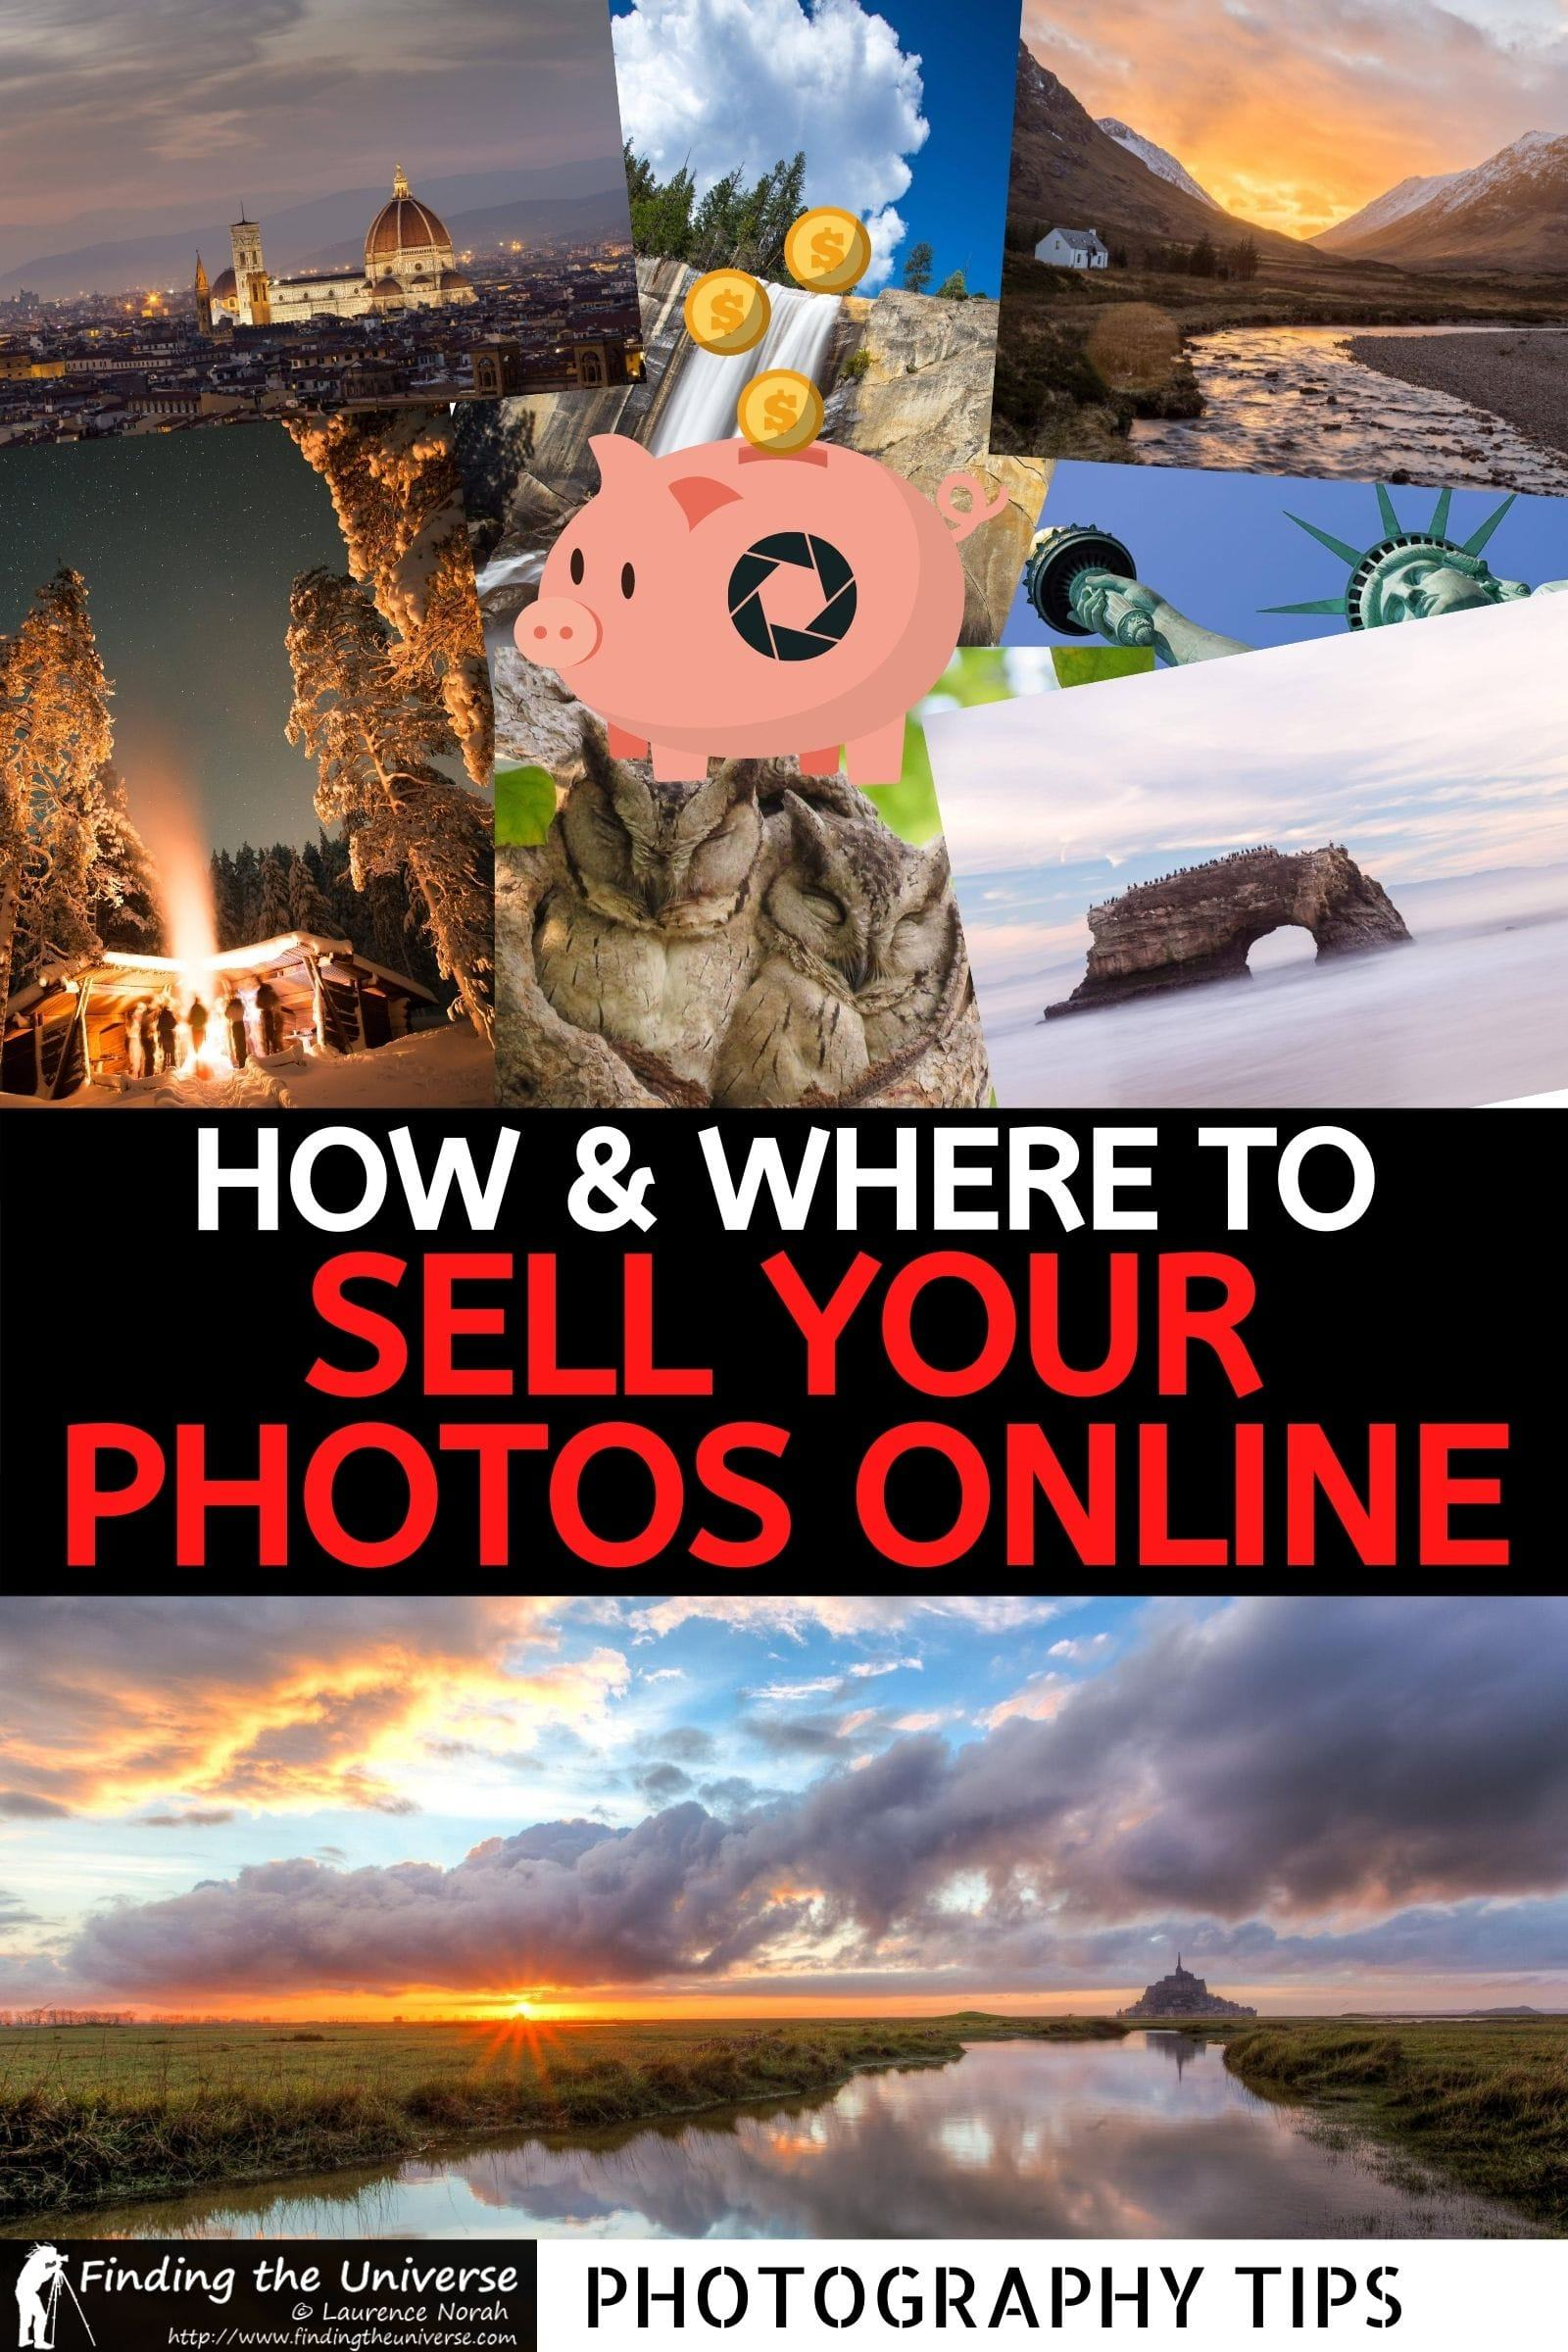 Want to sell photos online? This guide will help you decide where to sell your photos, plus what to look for when choosing a site